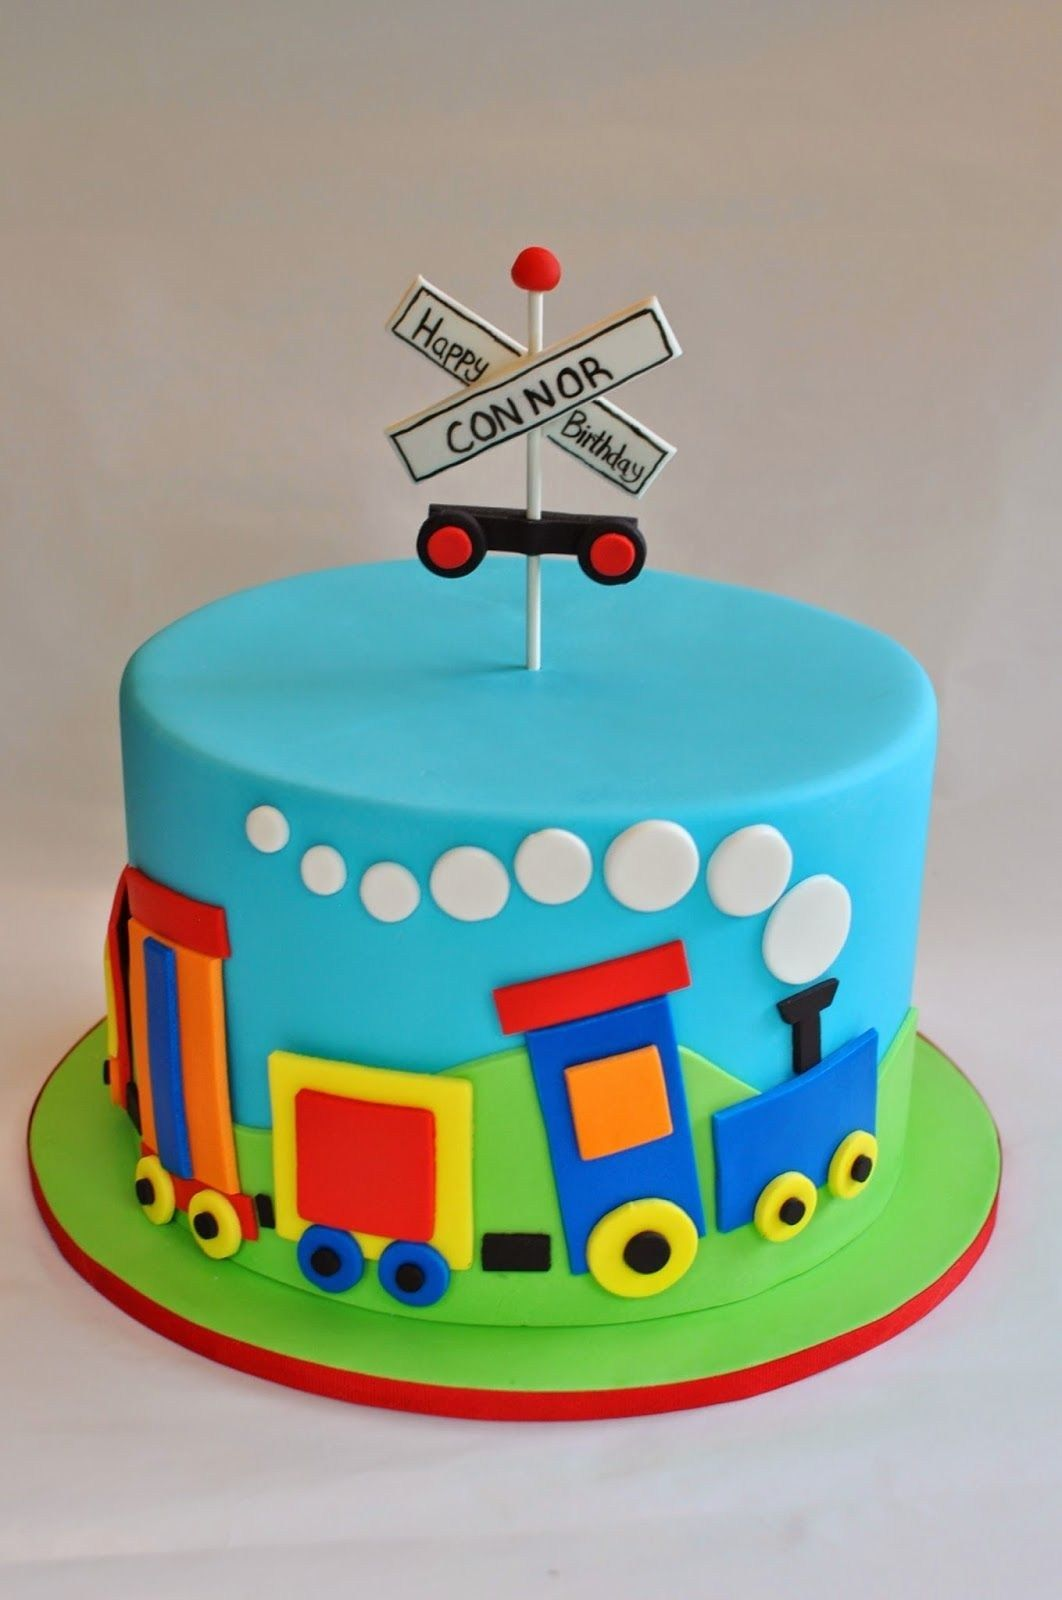 Marvelous 21 Pretty Image Of Train Cakes For Birthdays With Images Personalised Birthday Cards Beptaeletsinfo